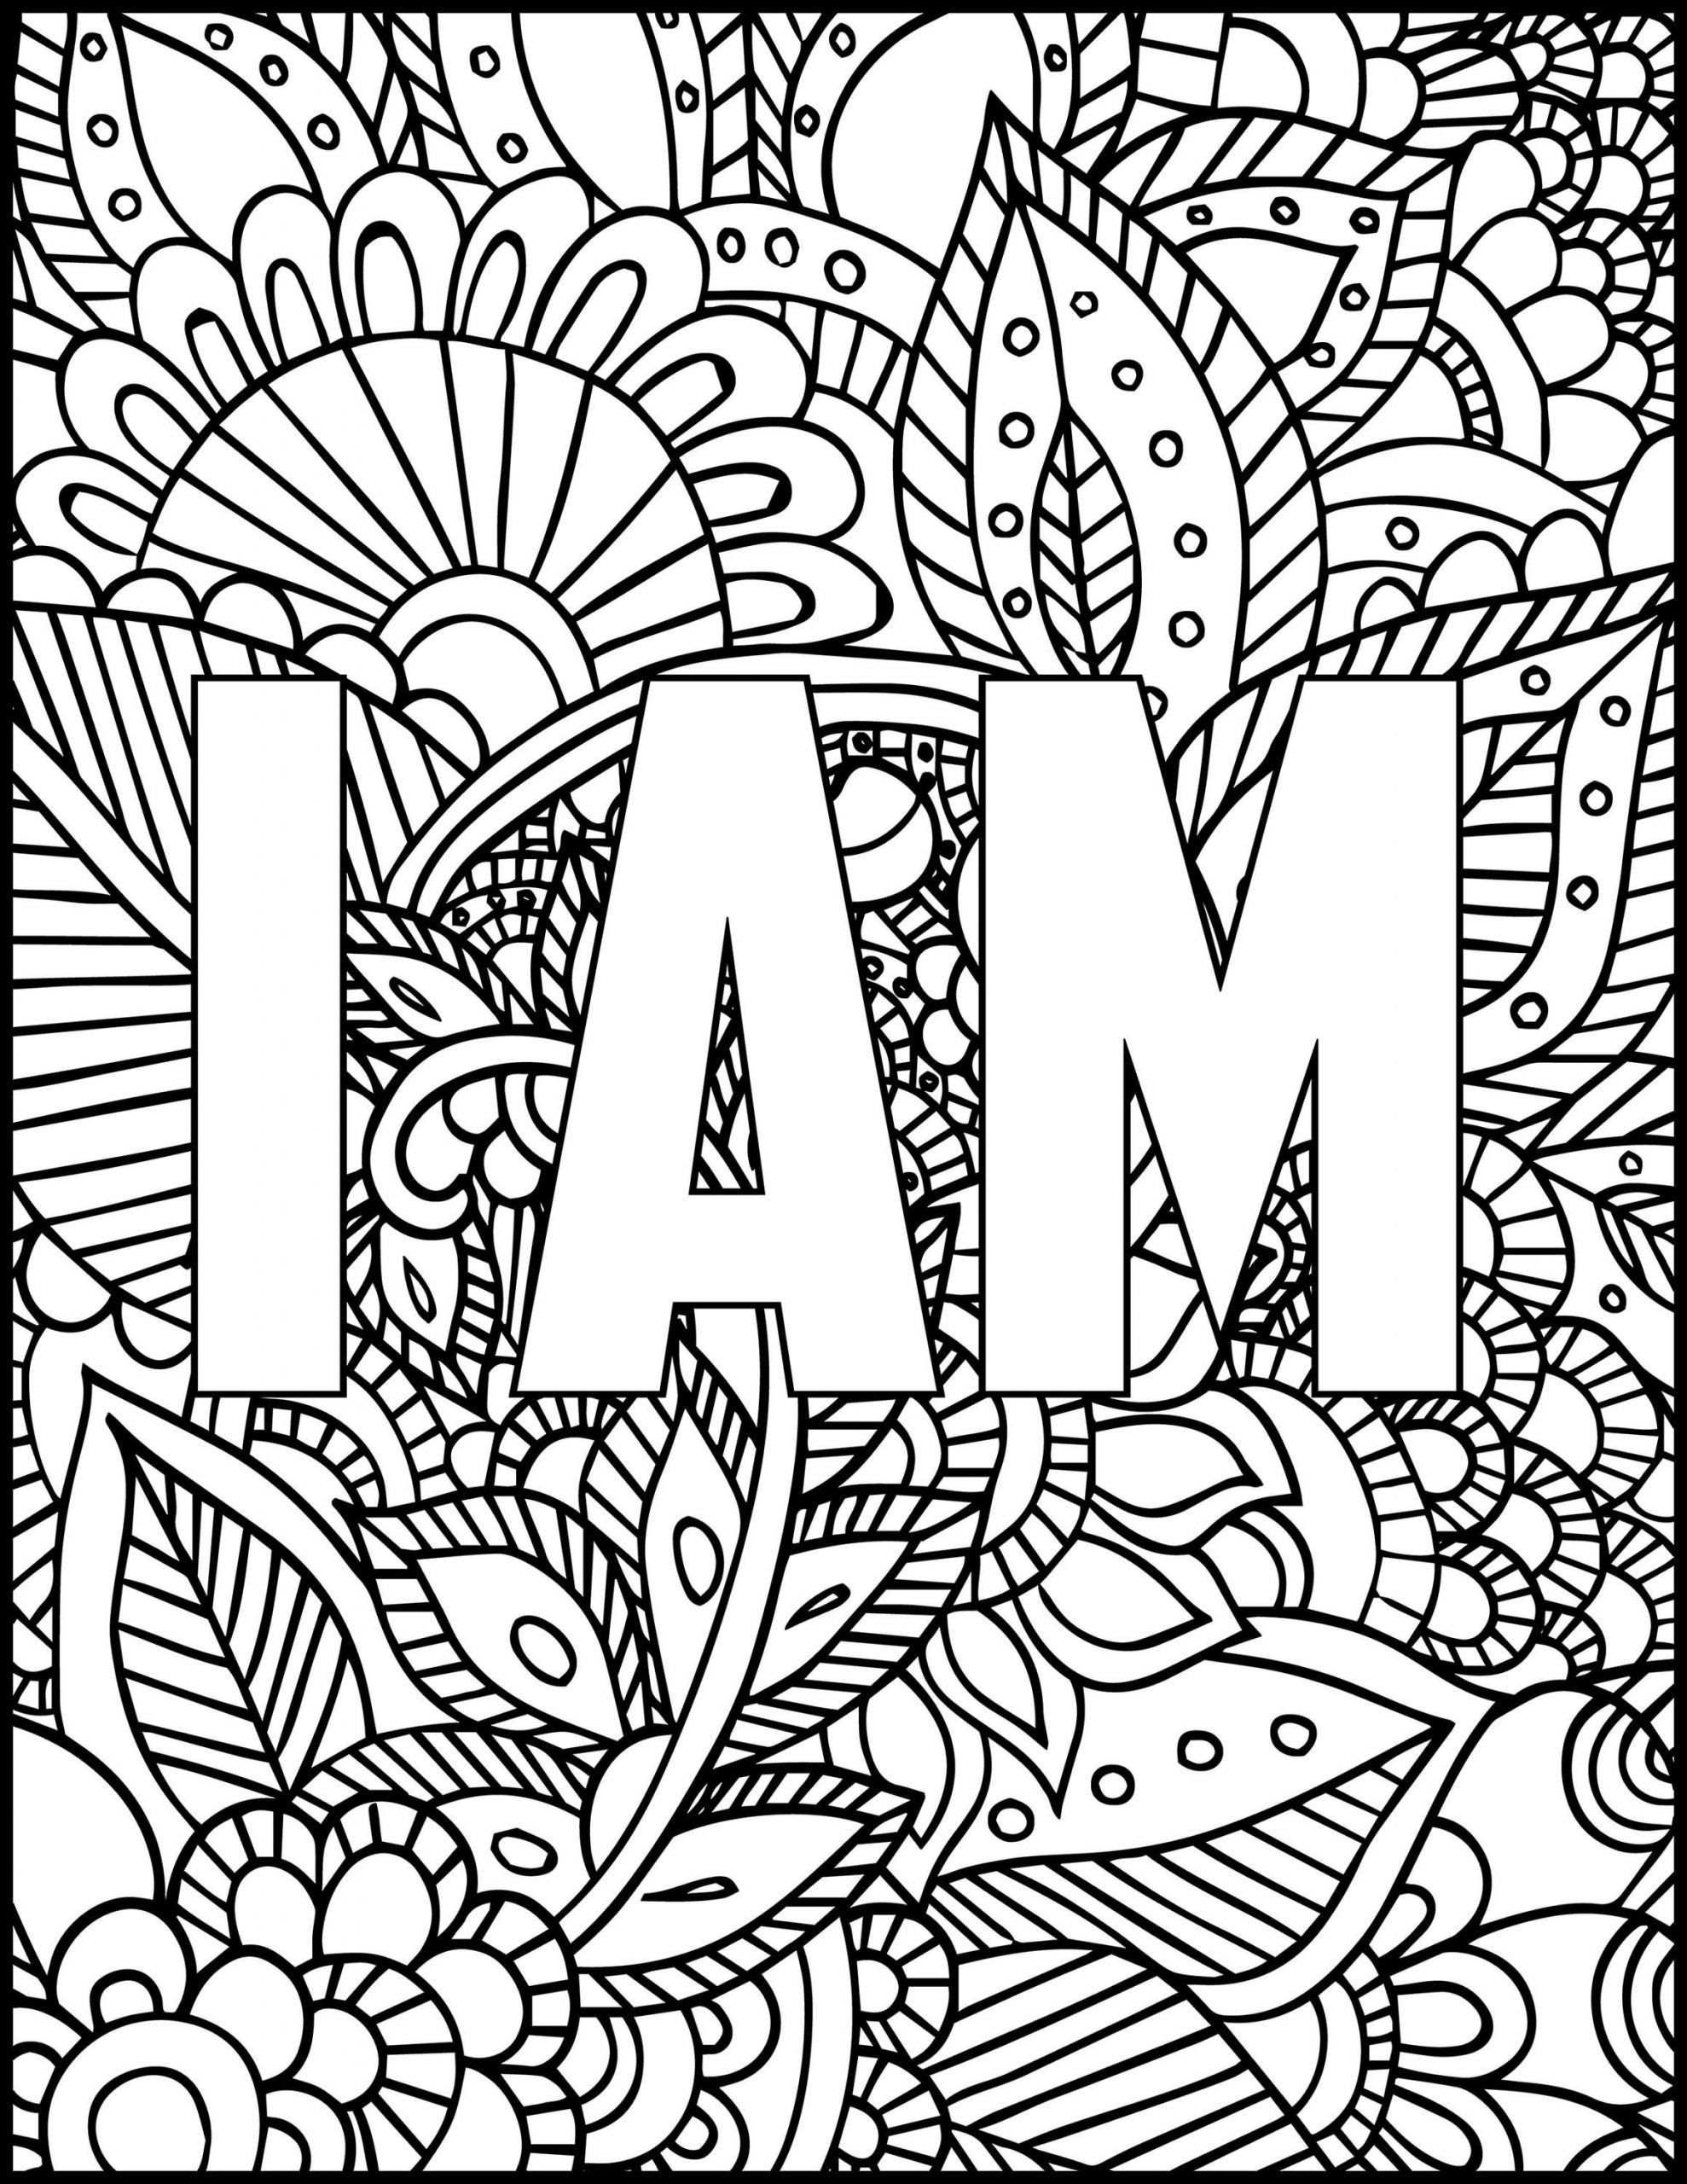 Detailed Coloring Pages For Kids 5 Printable Coloring Pages I Am Coloring Bundle Colori Detailed Coloring Pages Printable Coloring Book Abstract Coloring Pages